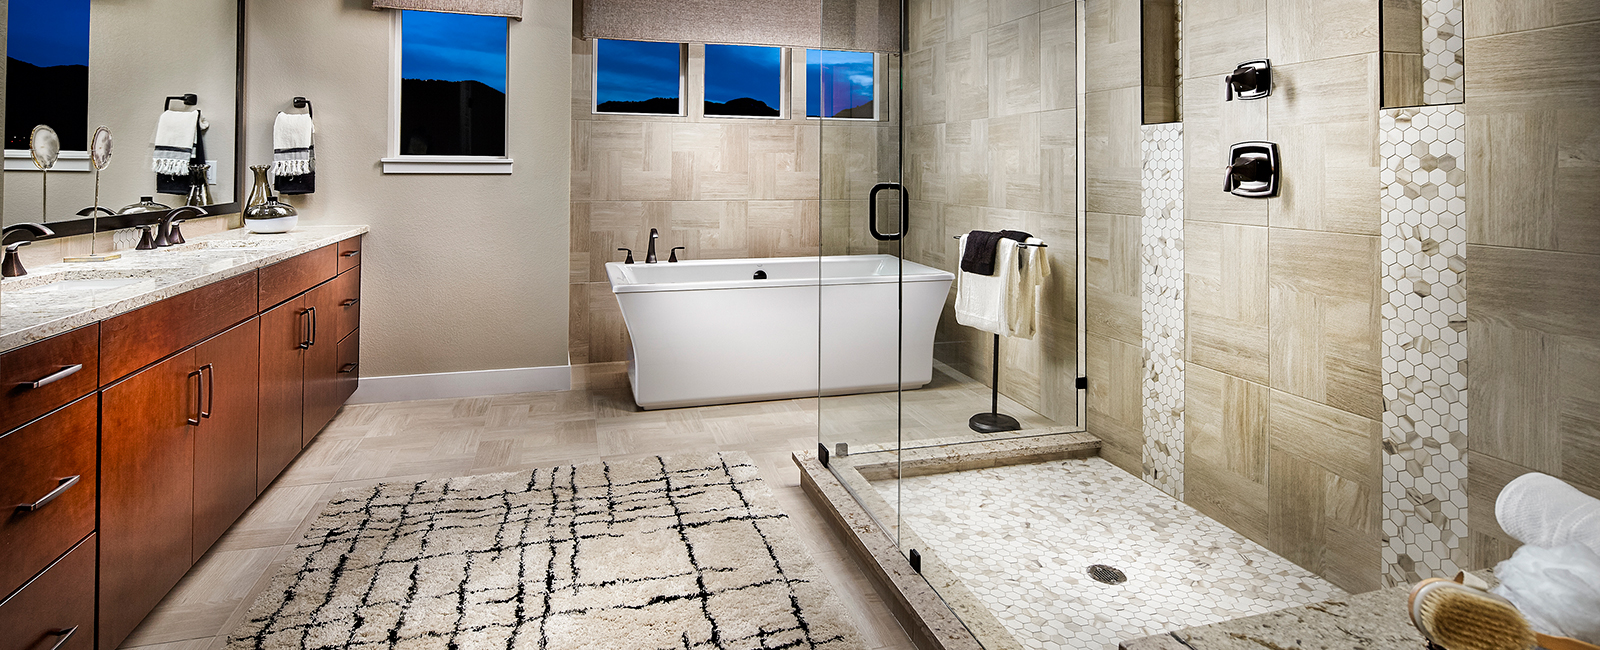 summit-master-bathroom-2